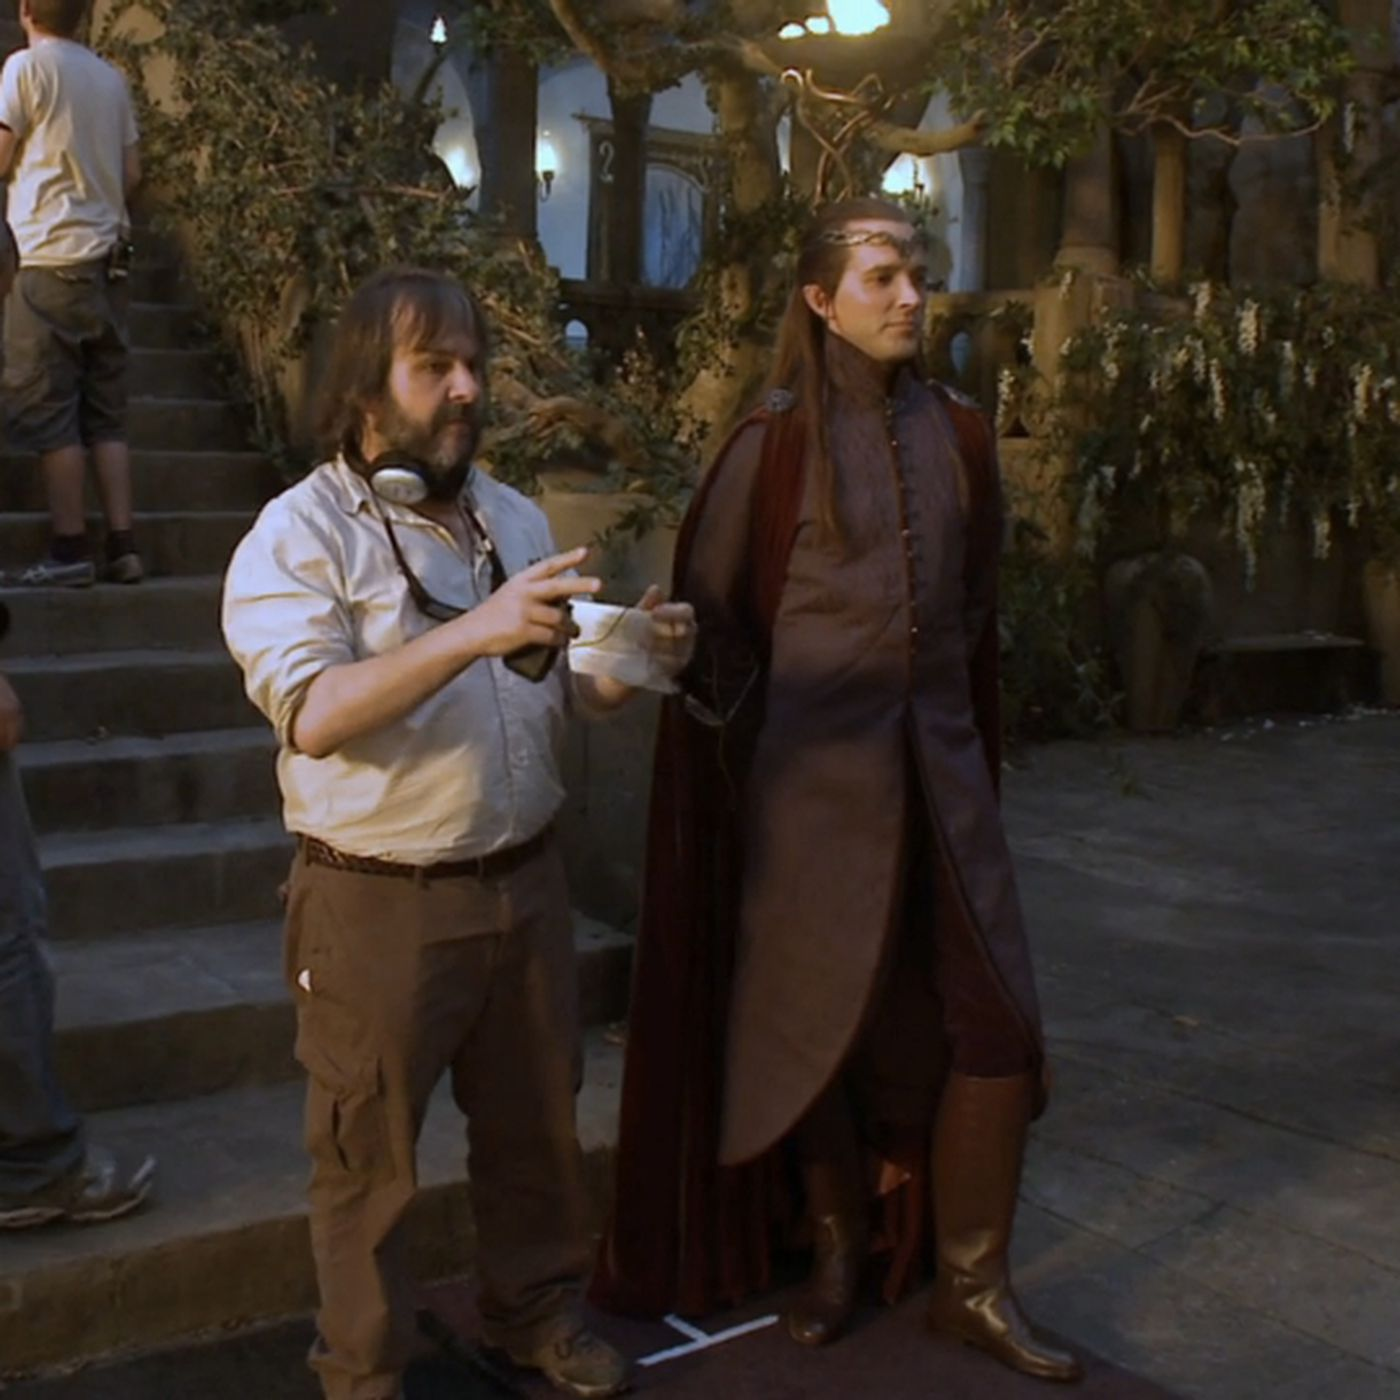 Watch this: creating the sights and sounds of 'The Hobbit' - The Verge